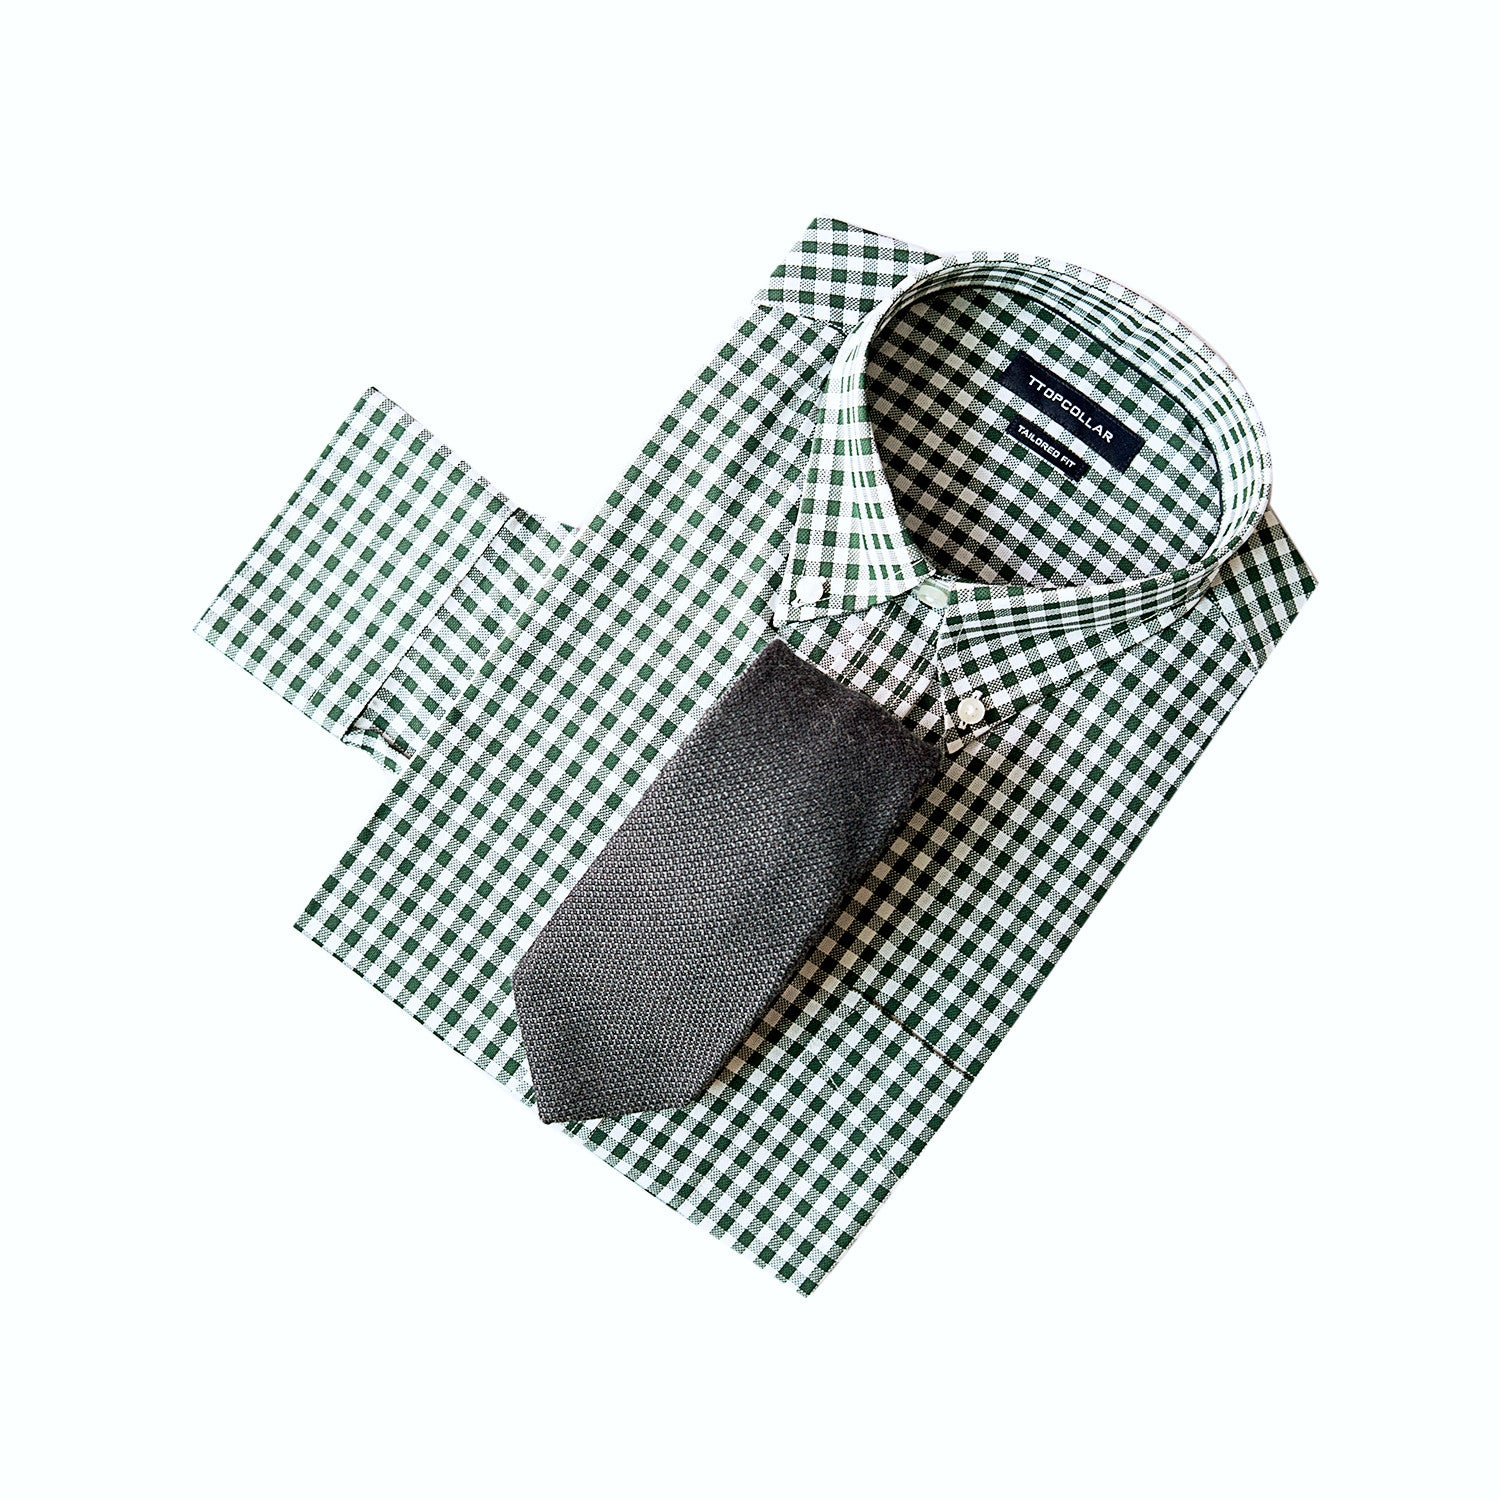 LONG SLEEVE FOREST GREEN GINGHAM SHIRT